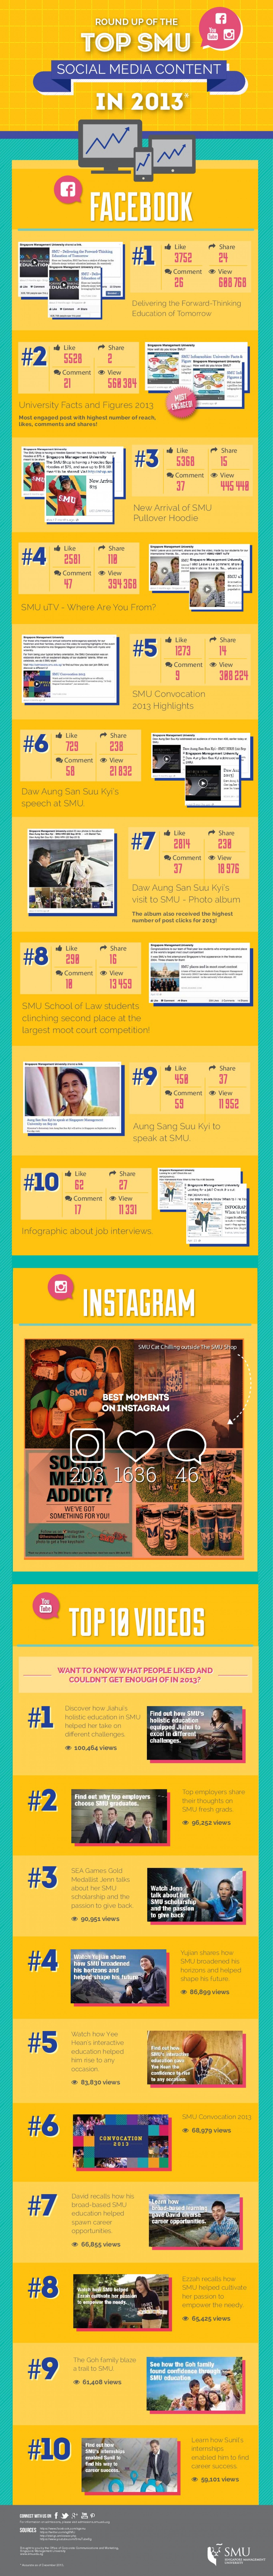 Round Up of the Top SMU Social Media Content in 2013 Infographic